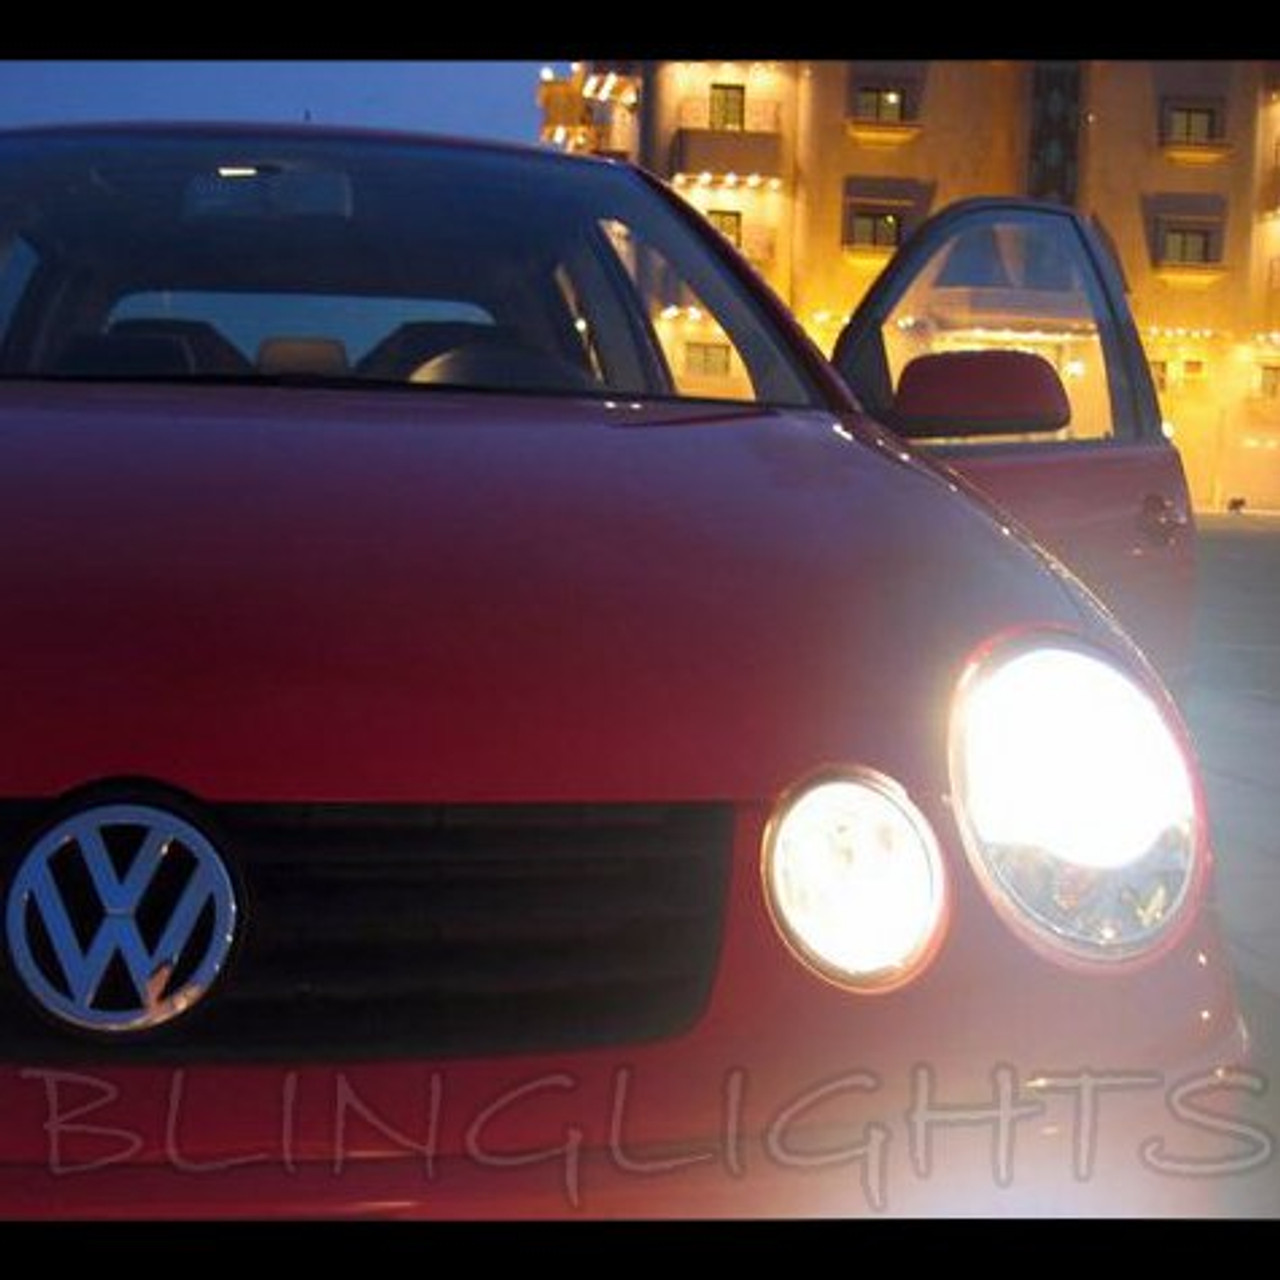 Volkswagen Vw Polo Hid Simulated Head Lamp Light Bulbs Replacement Upgrade Mk4 9n 9n3 6r Gti Blinglights Com